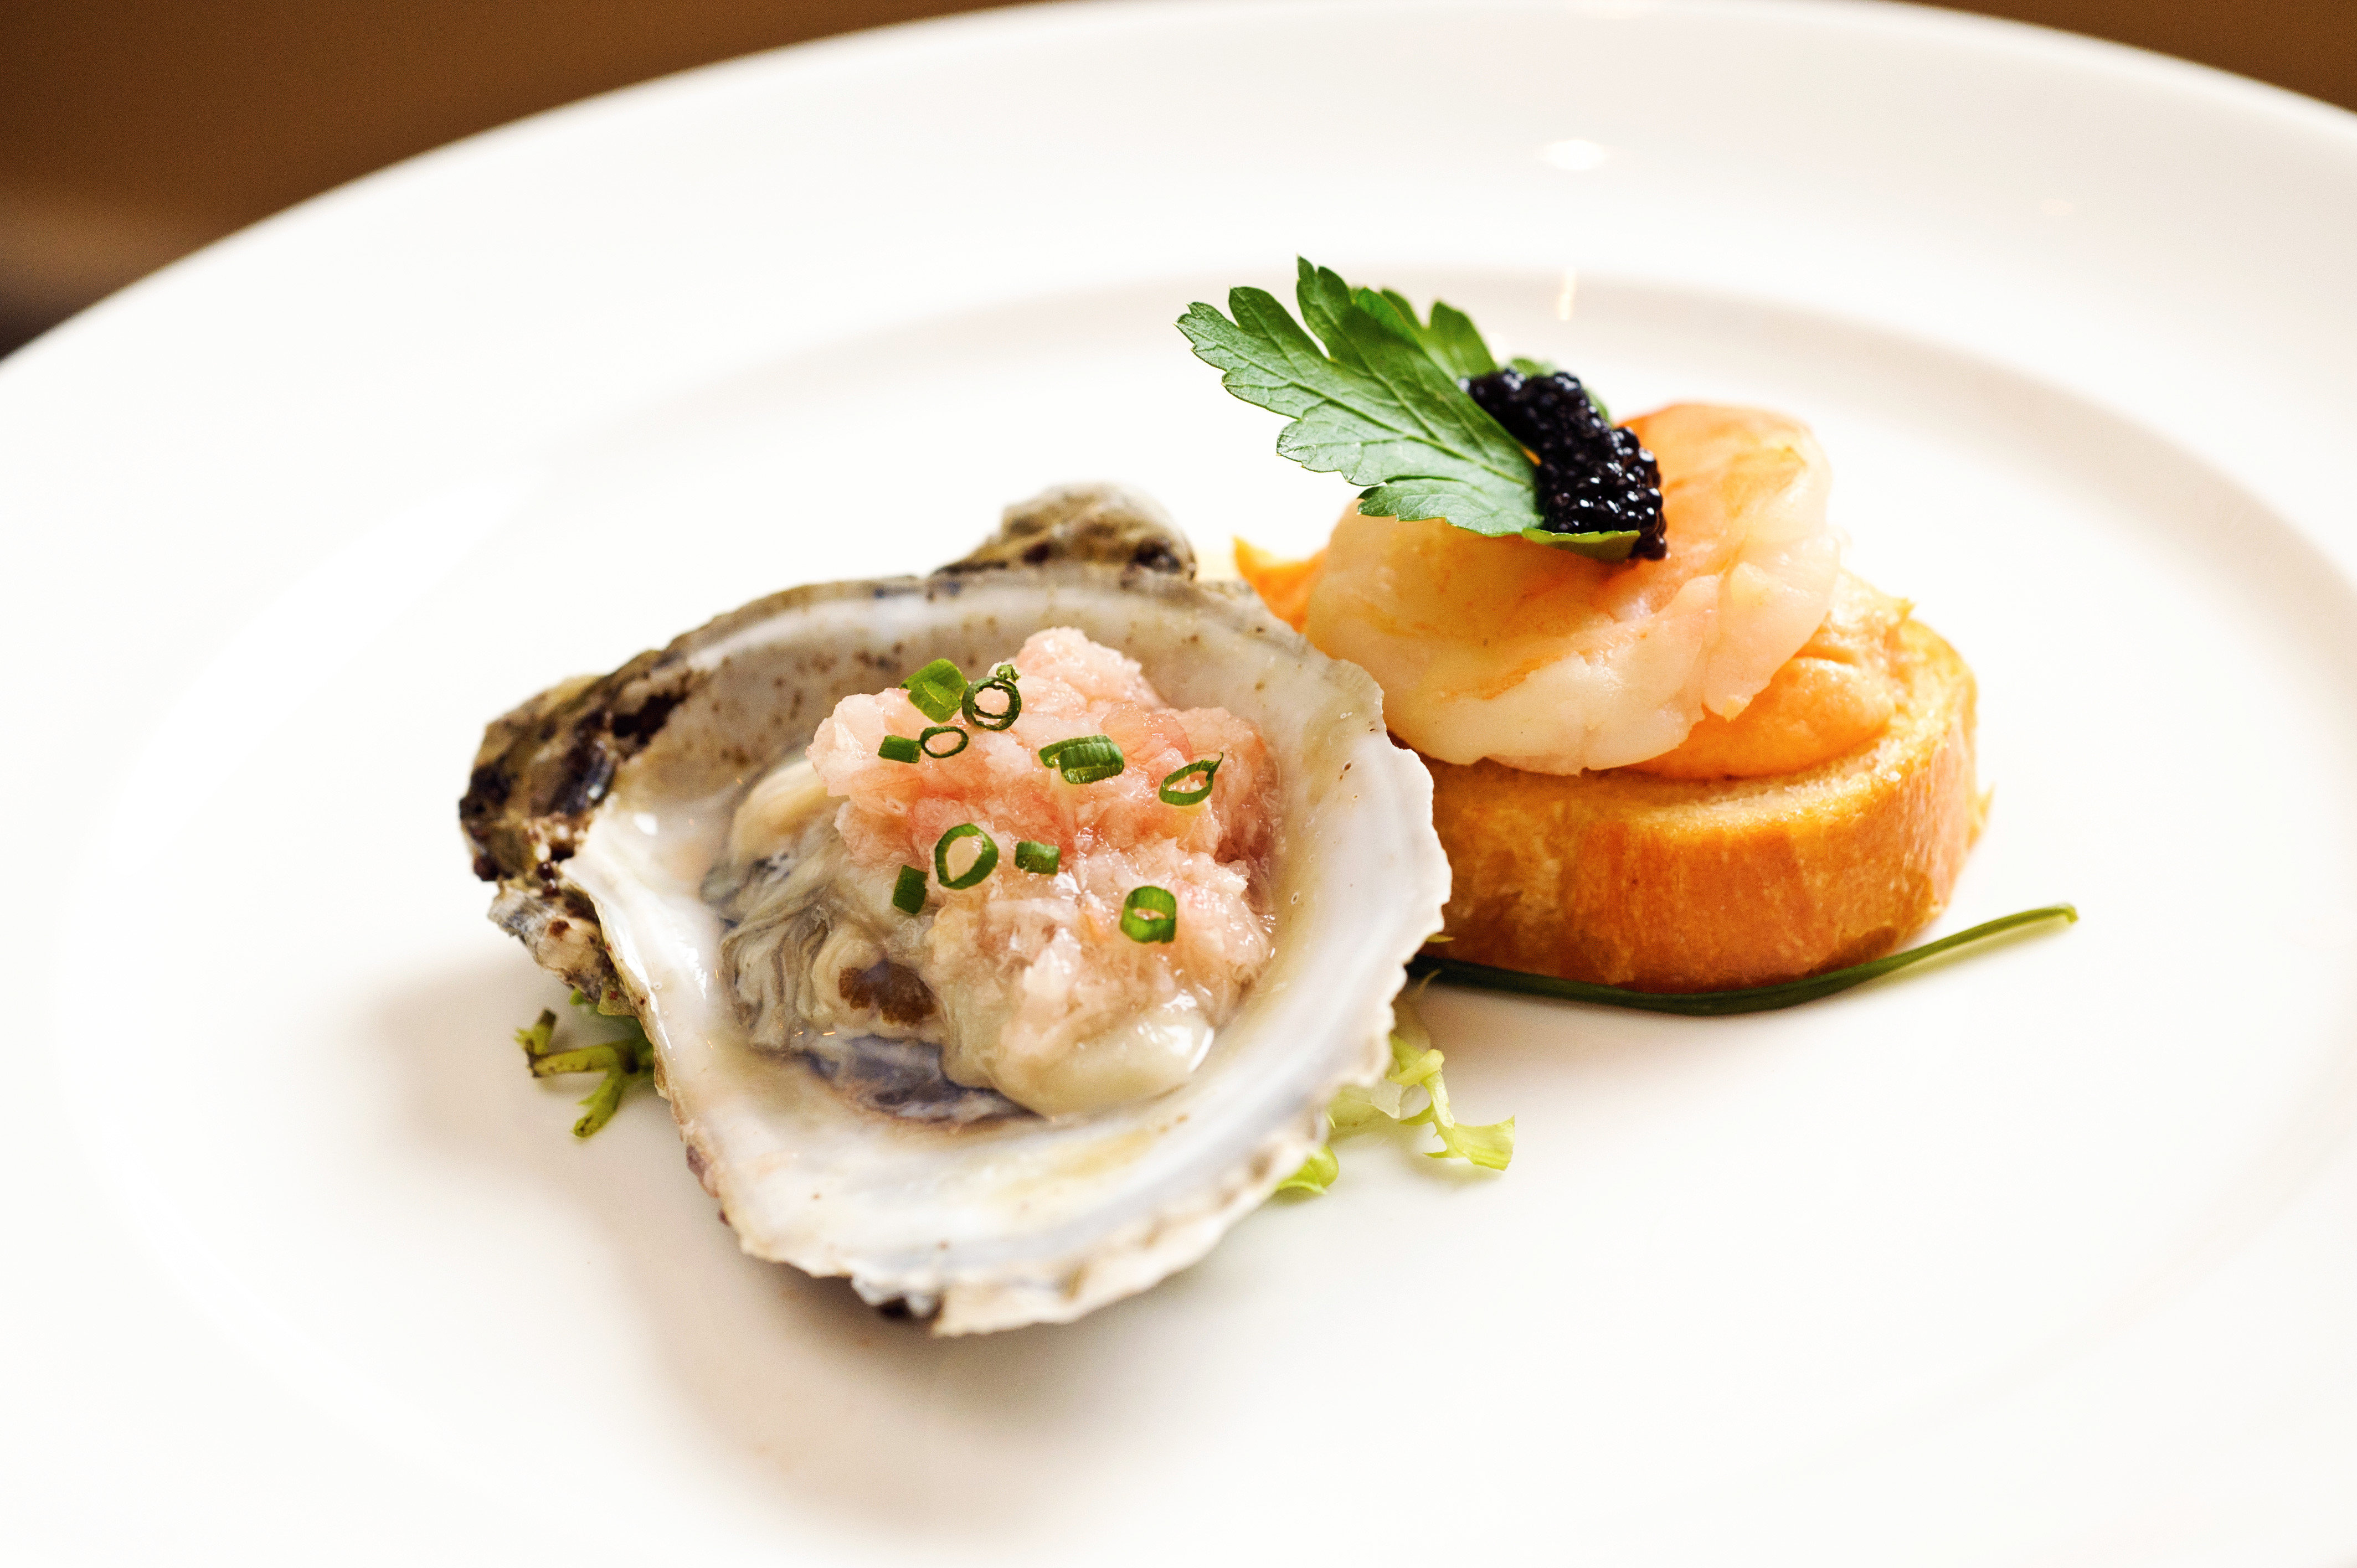 Dining Drink Eat plate food white Seafood cuisine fish hors d oeuvre invertebrate clams oysters mussels and scallops piece de resistance